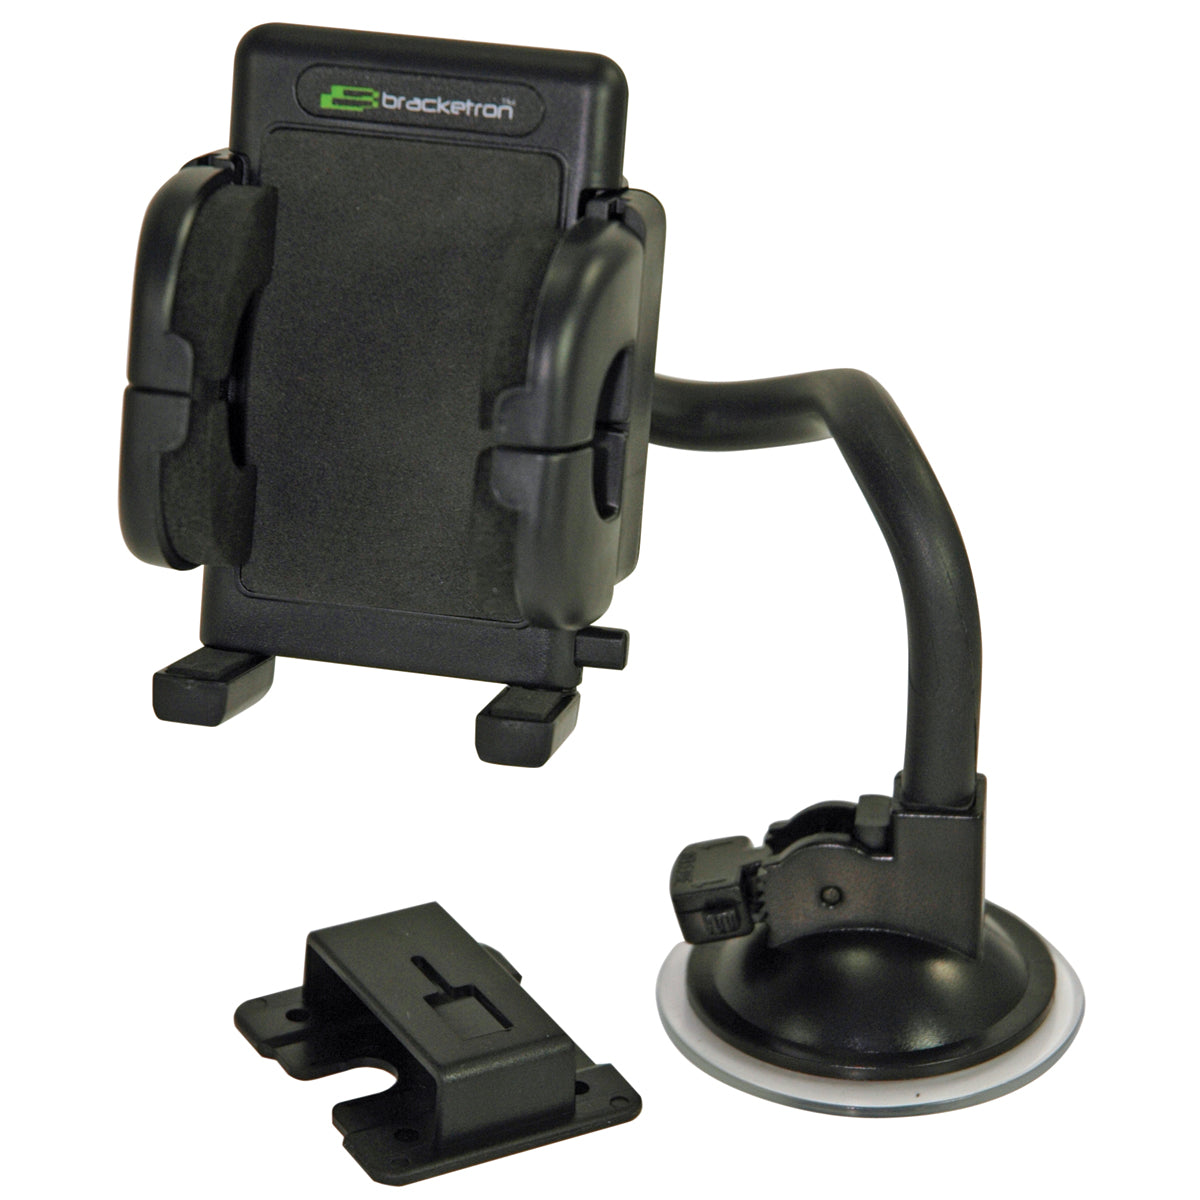 Mobile Grip-iT Quick Lock & Release Windshield Mount Kit, Up to 4.5""